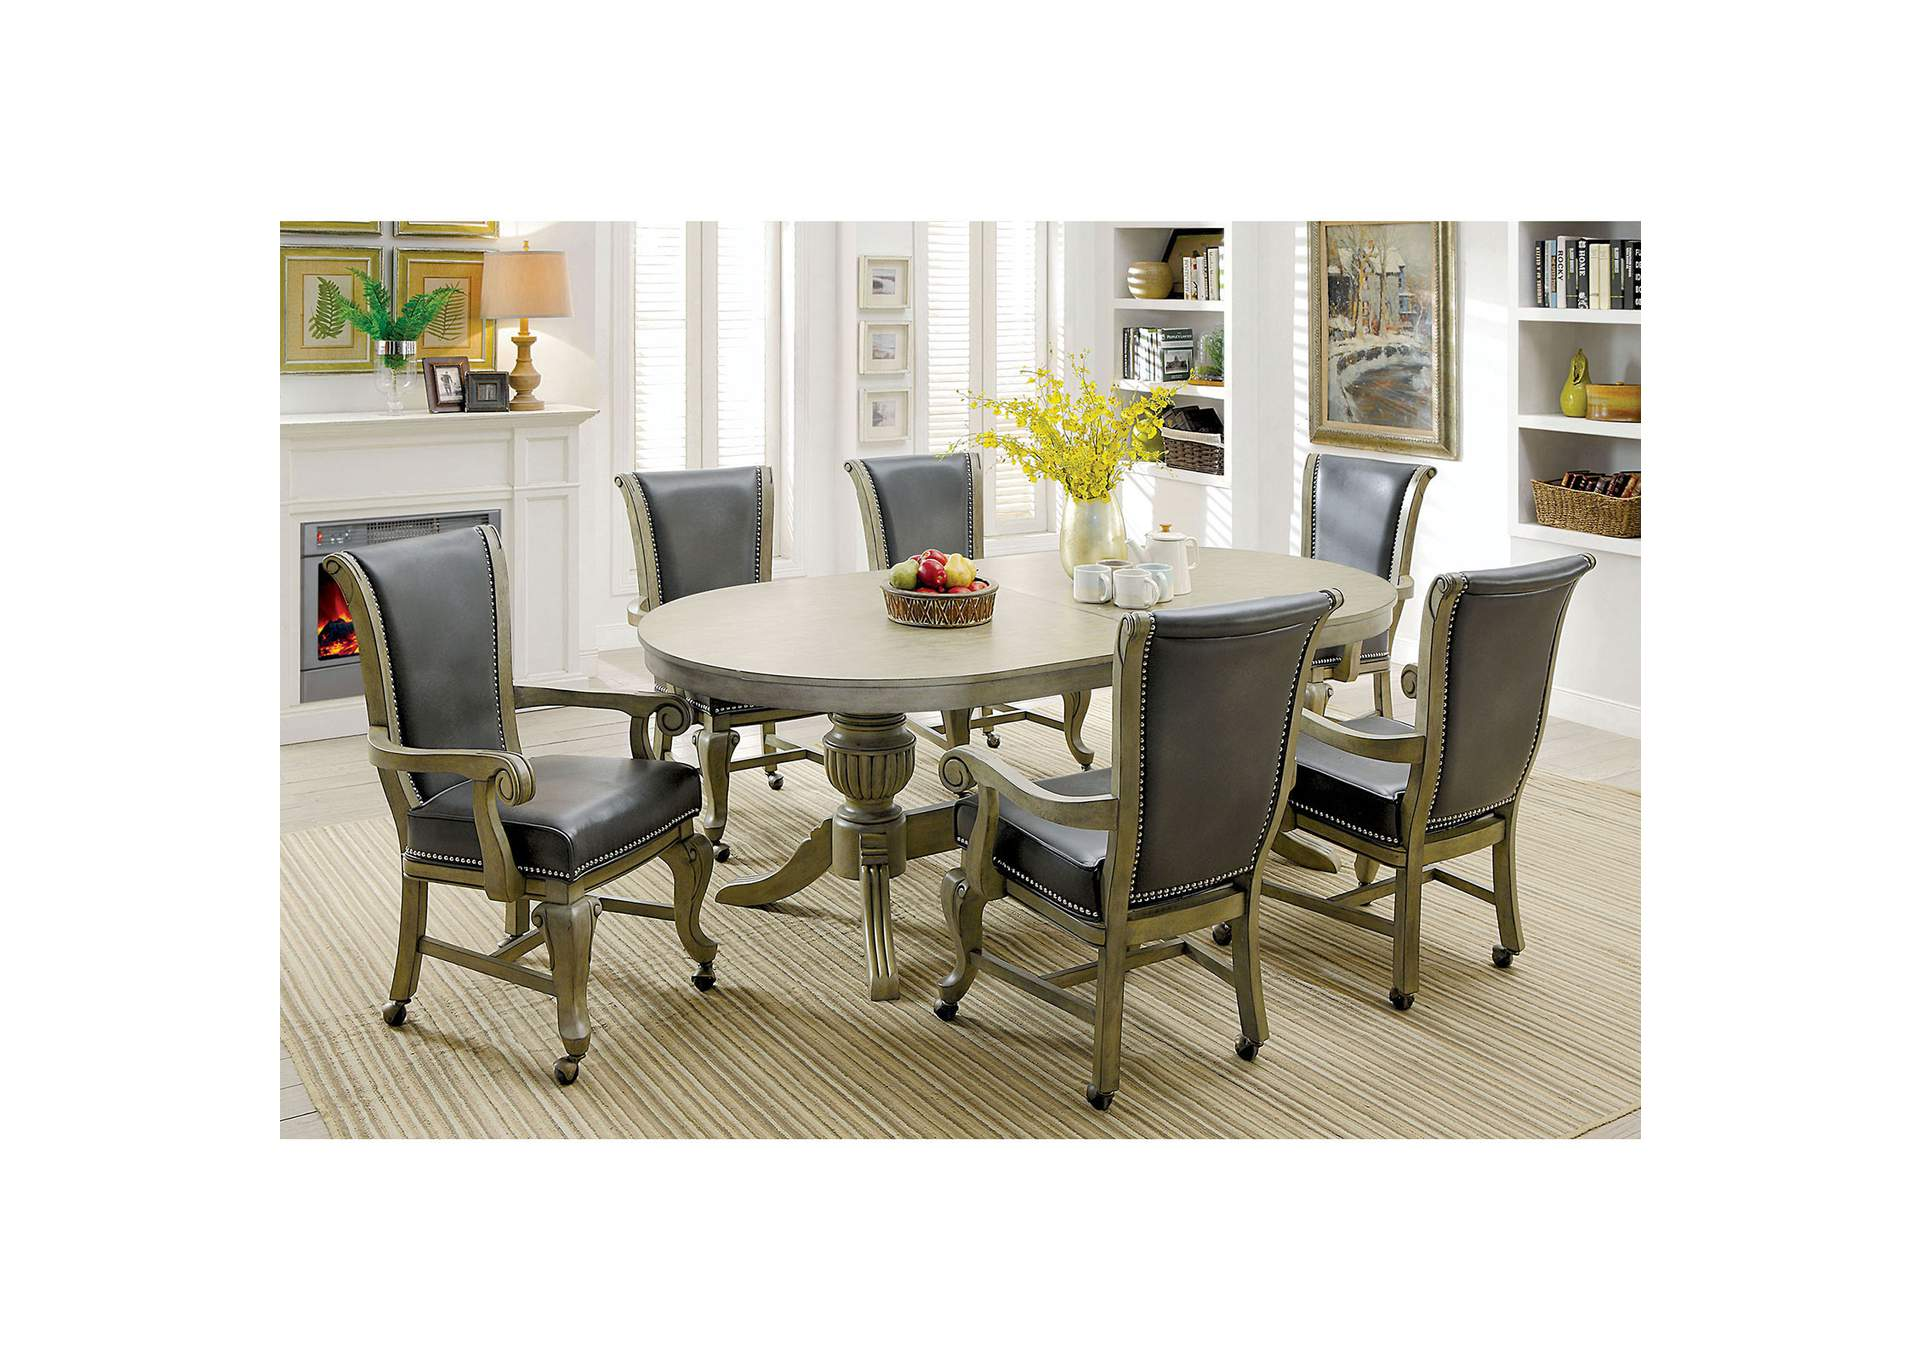 Furniture ville bronx ny melina gray game table for Furniture ville